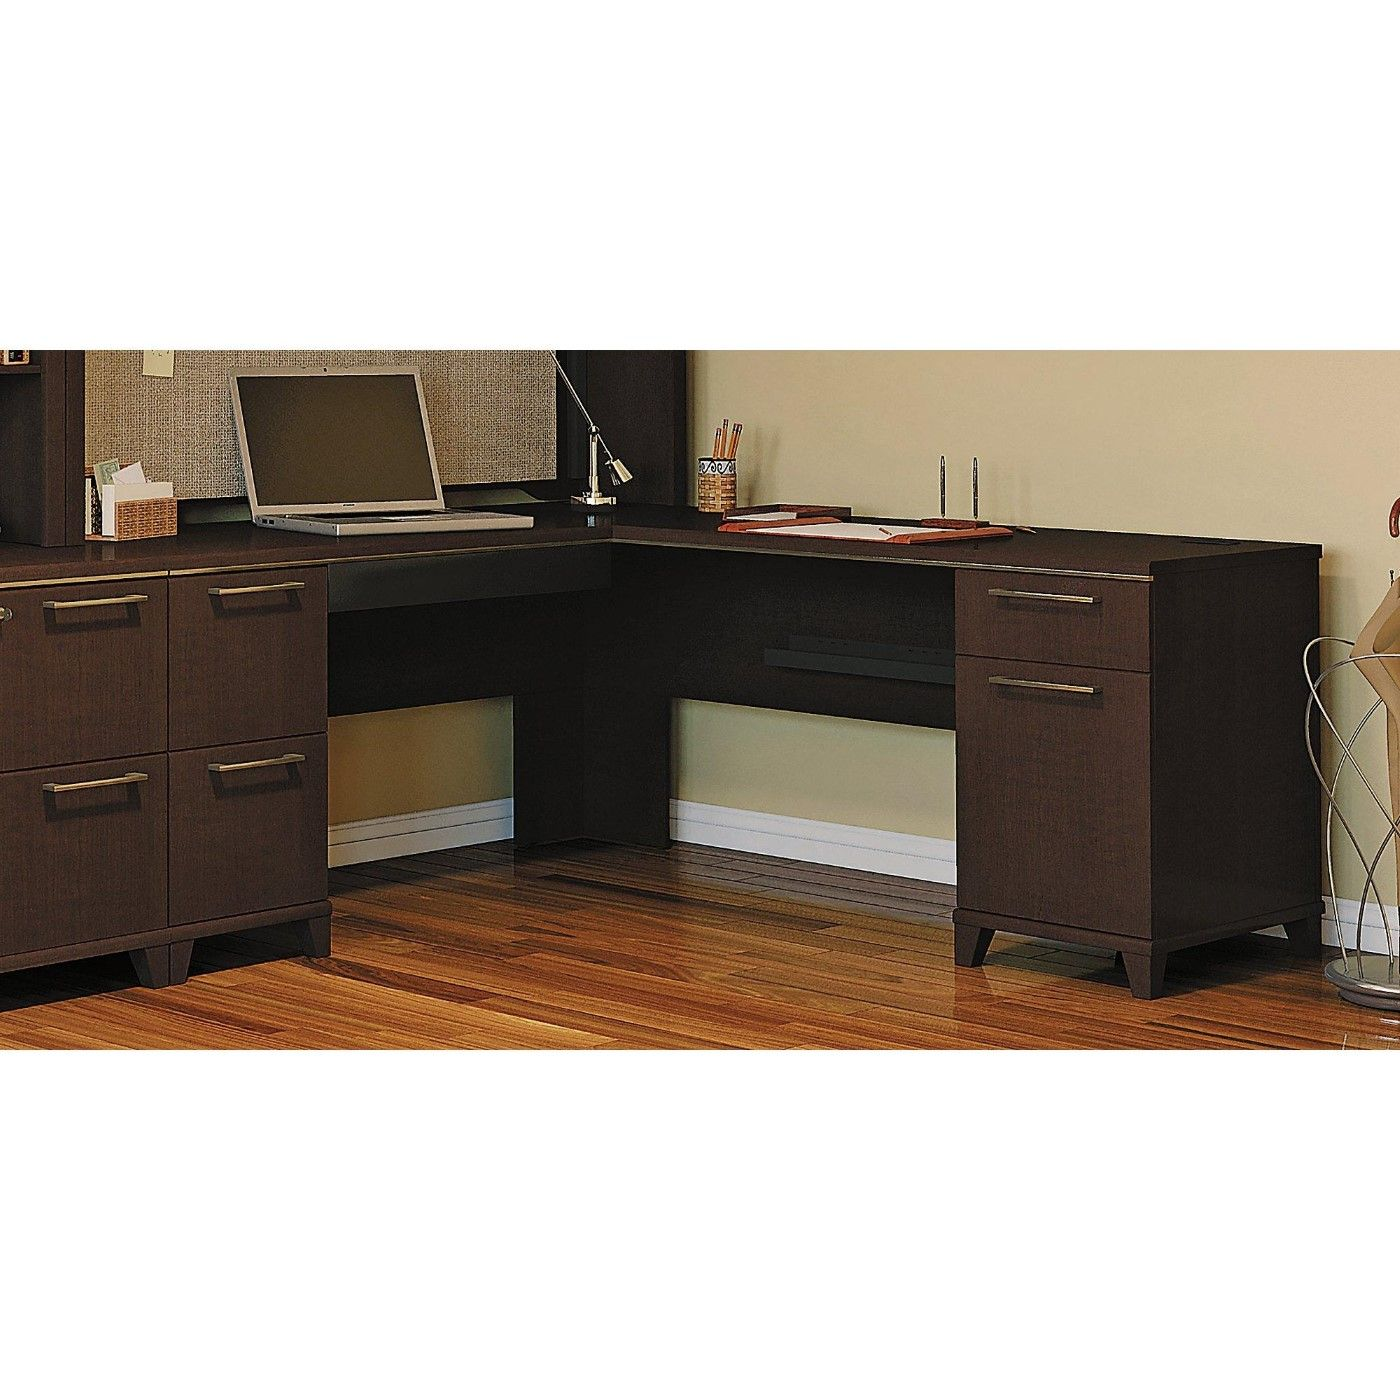 BUSH BUSINESS FURNITURE ENTERPRISE MOCHA CHERRY 72W x 72D L-SHAPED DESK #EH-2910MC-03K. FREE SHIPPING: